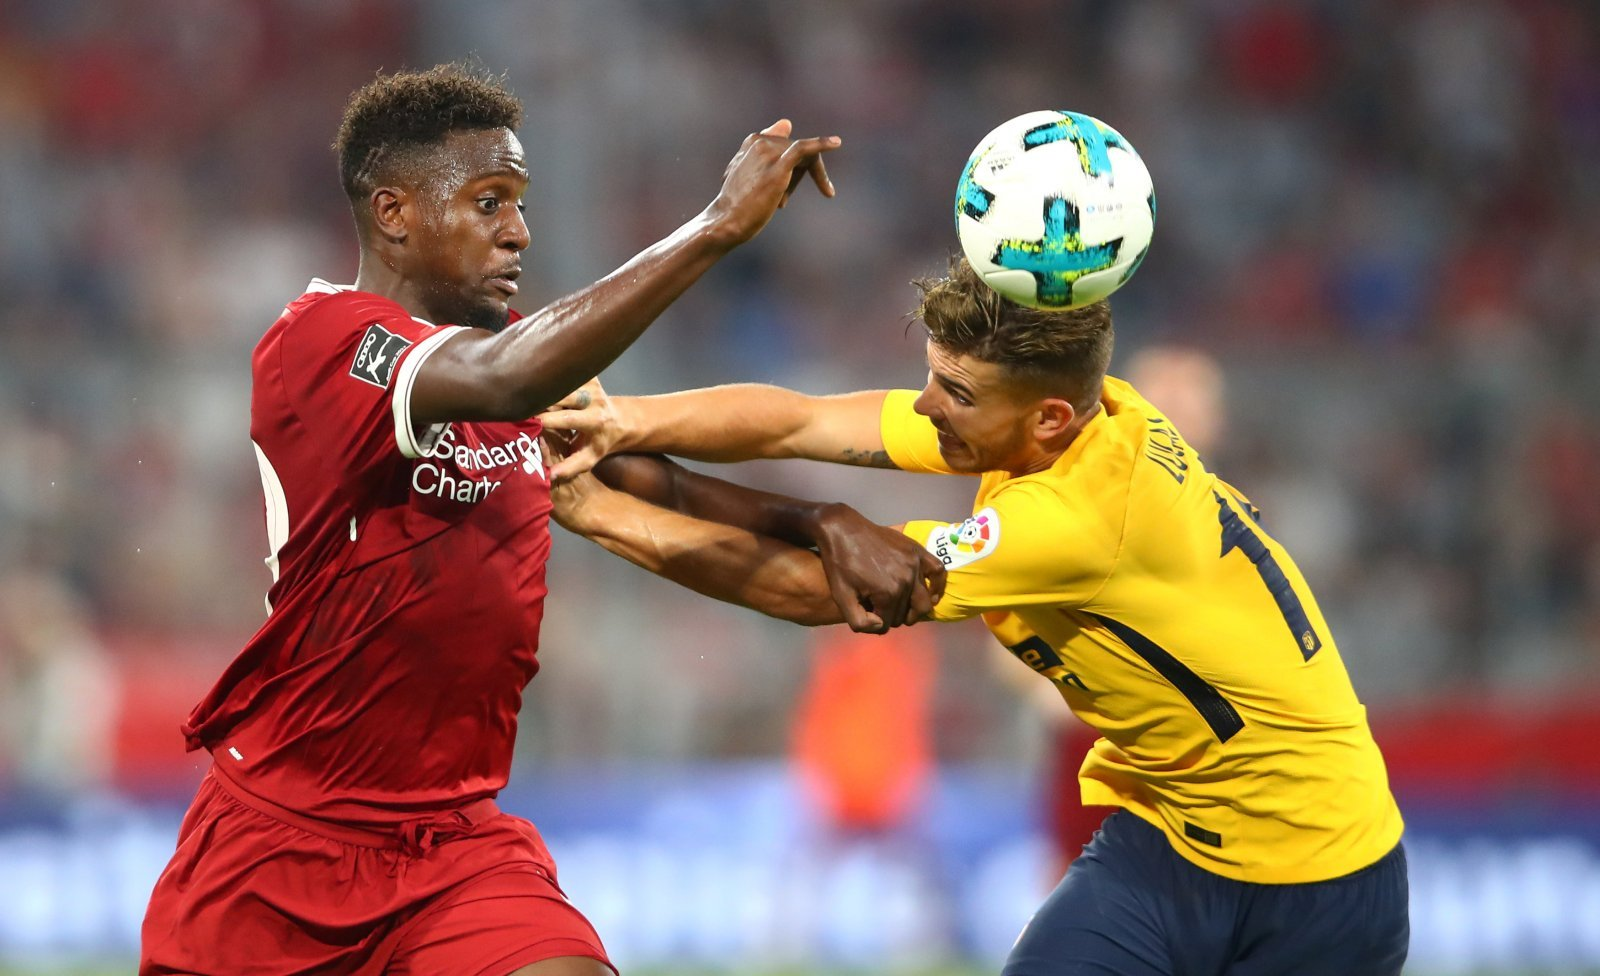 Liverpool's Divock Origi should seek to reunite with ex-boss Brendan Rodgers at Celtic